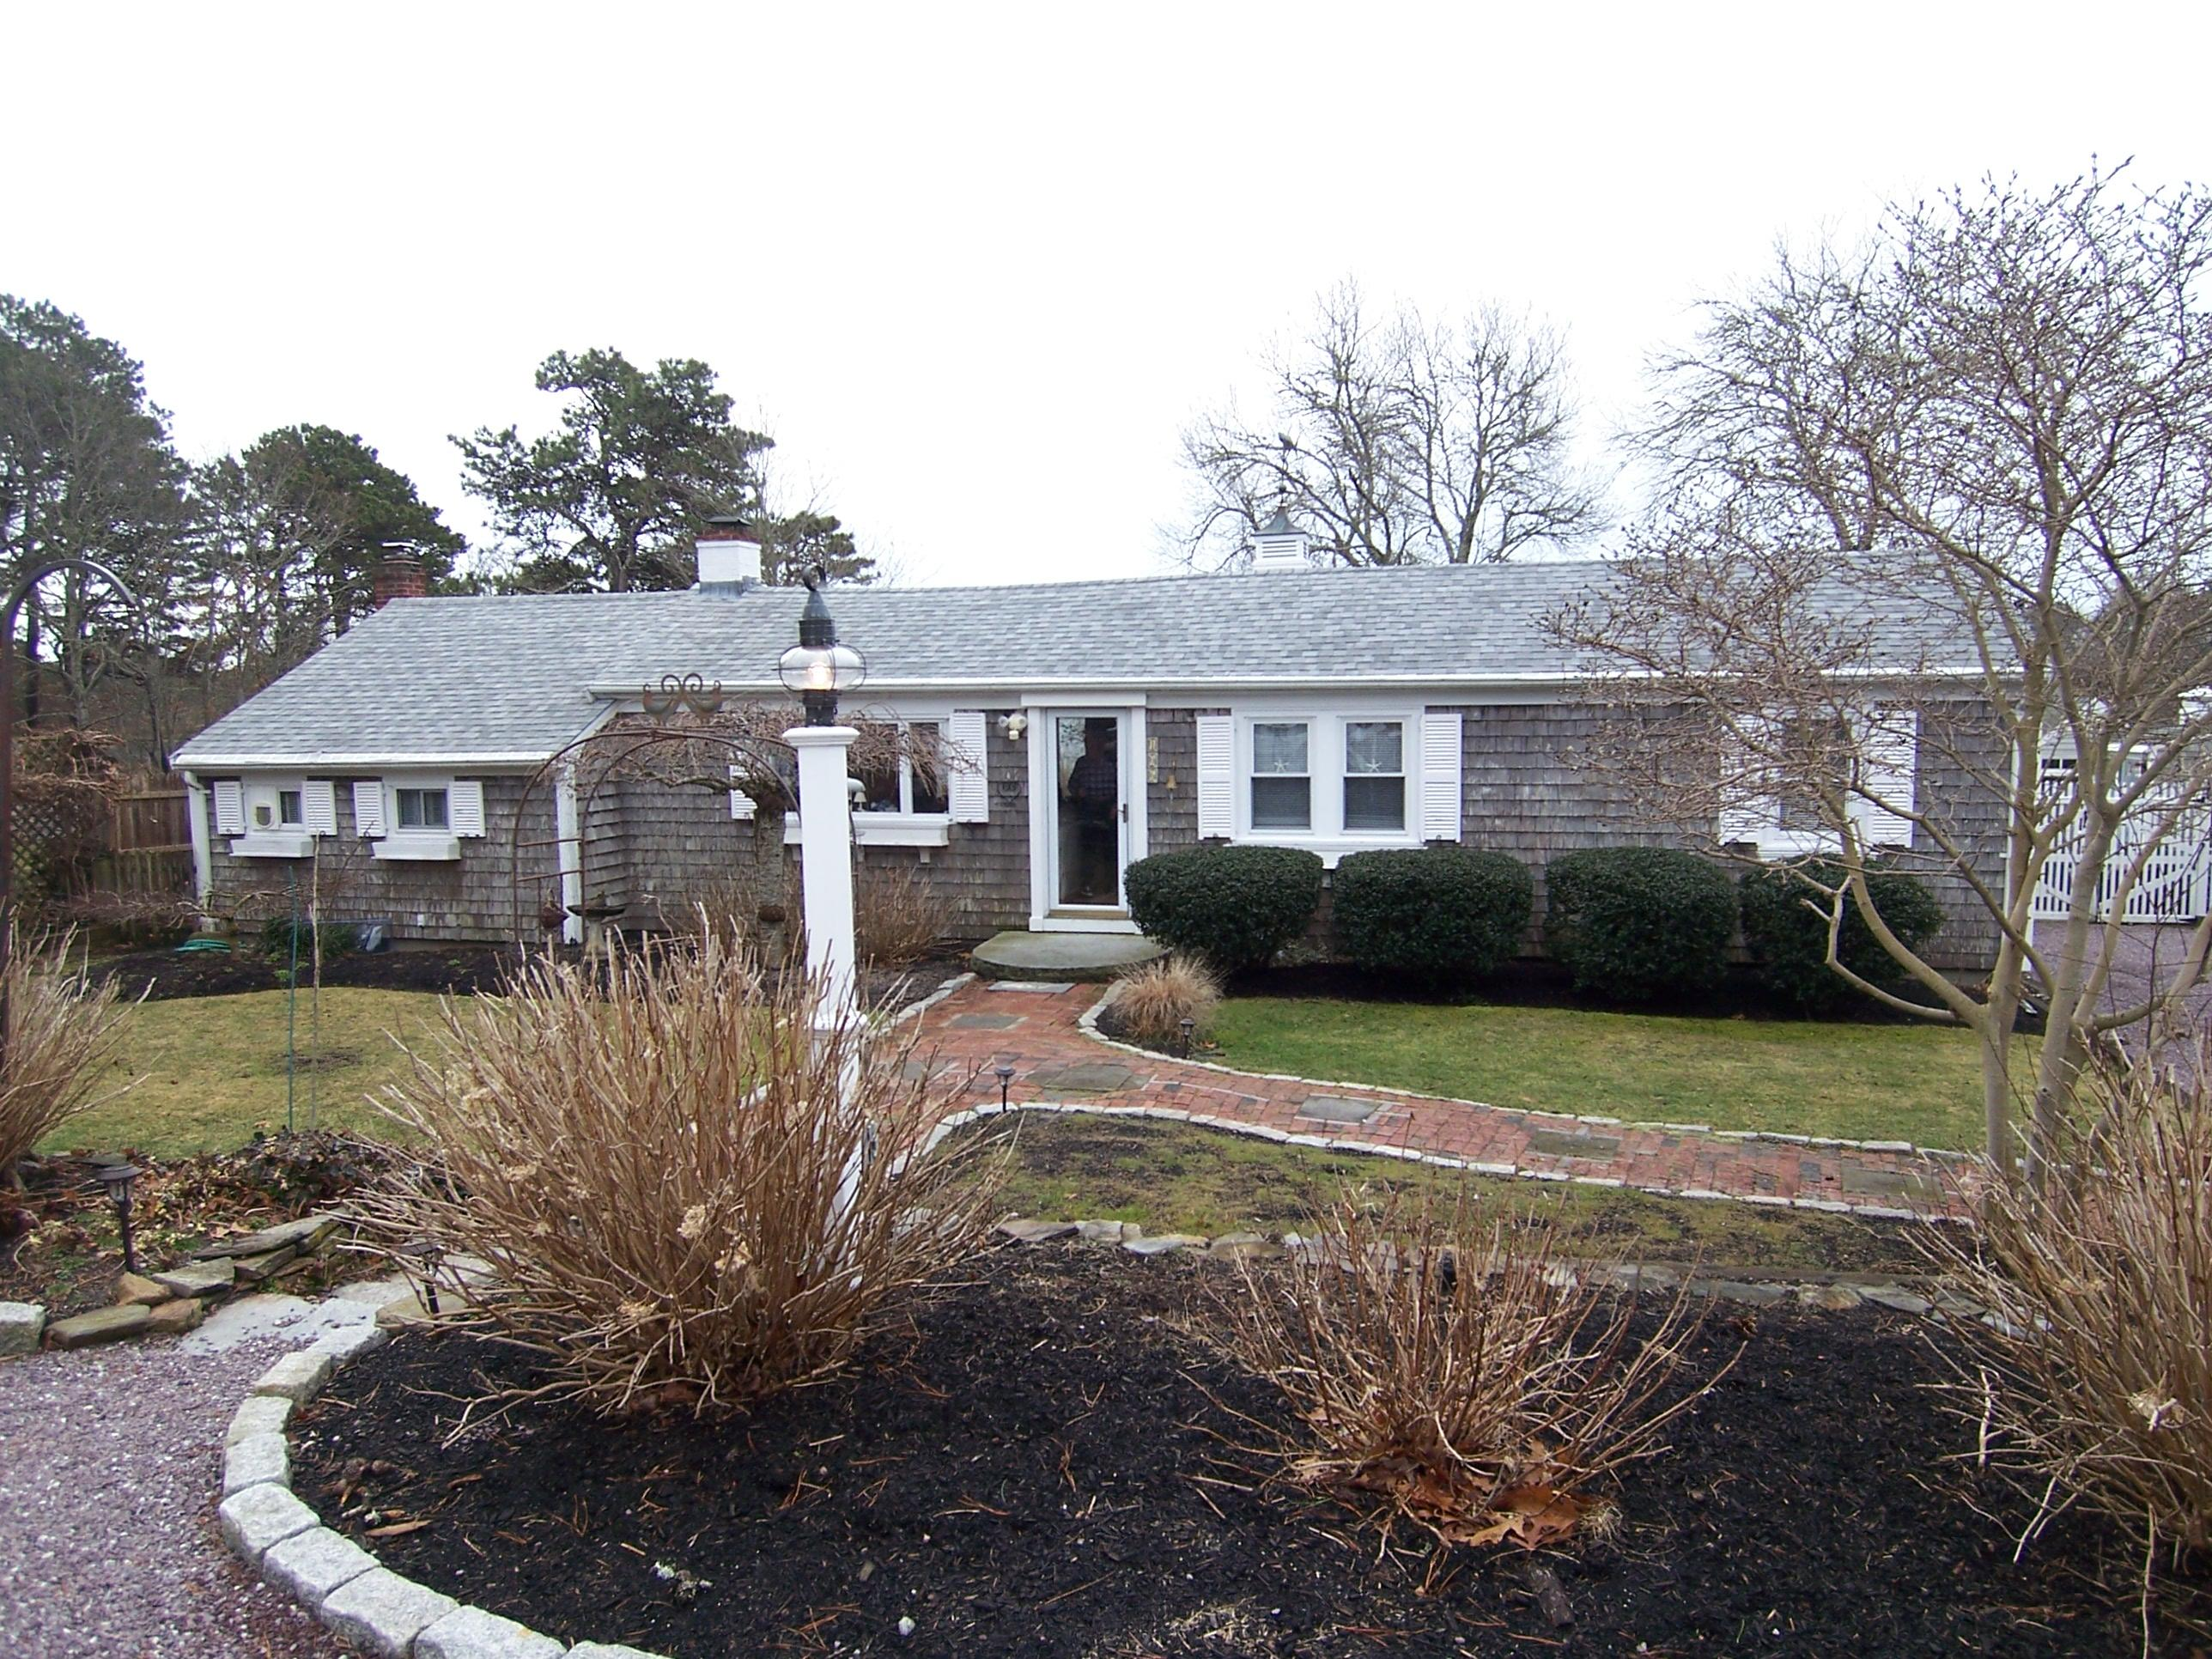 106 Mayflower Terrace, South Yarmouth MA, 02664 sales details